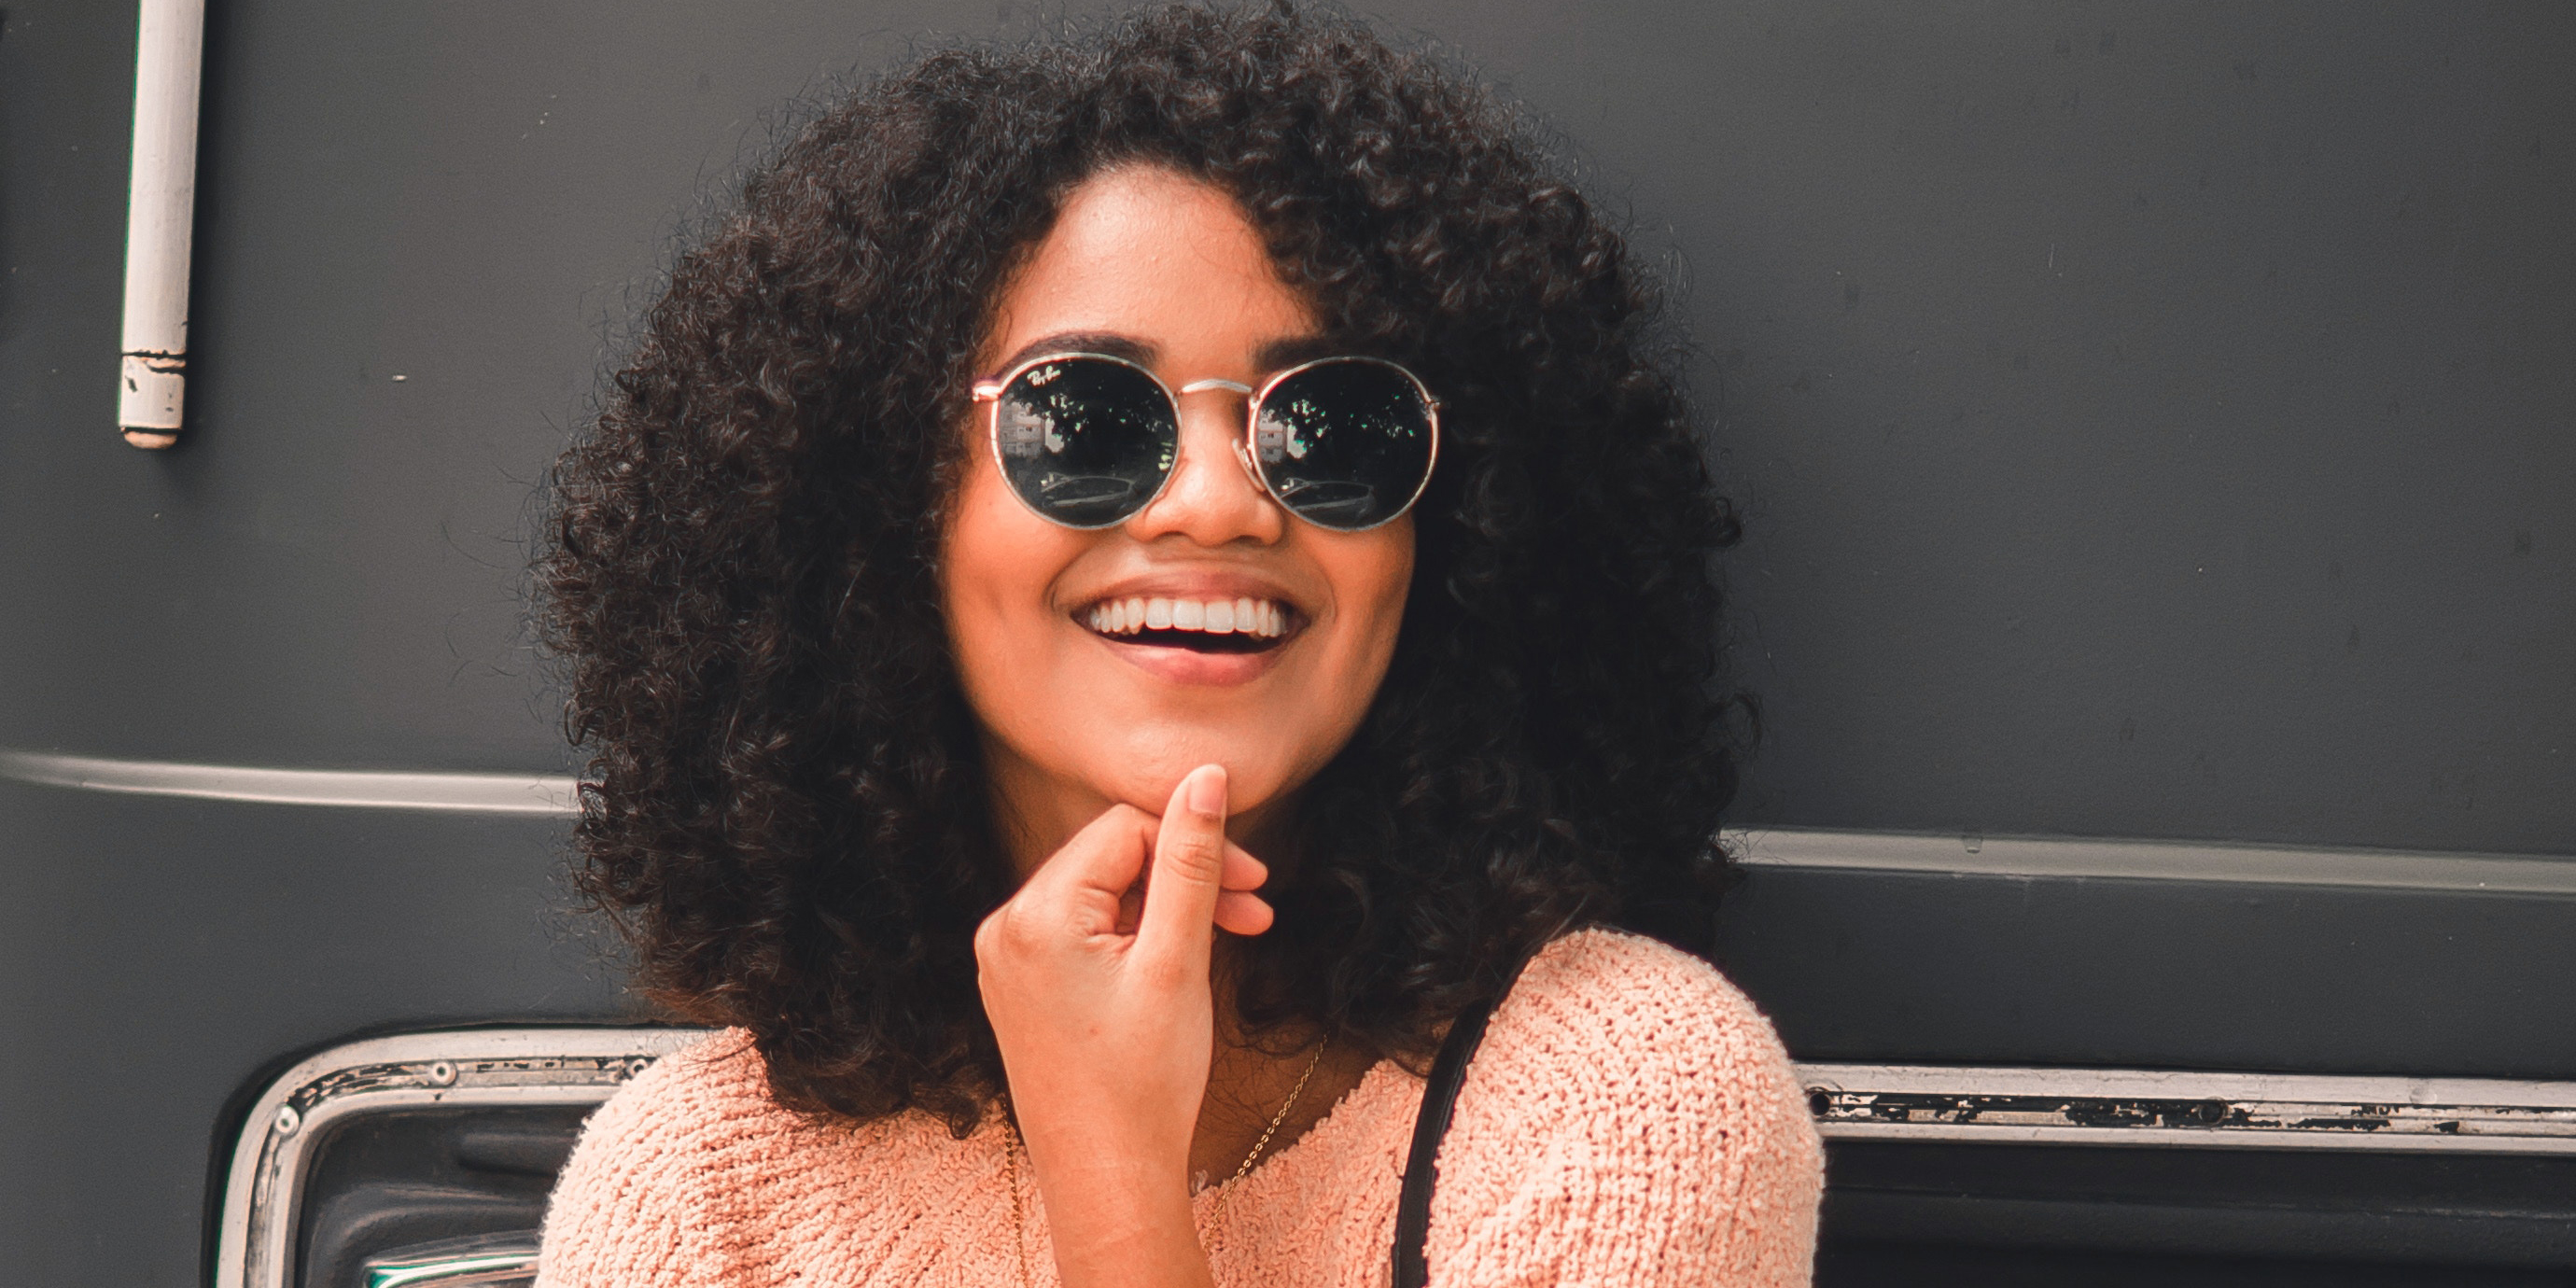 5 amazing products for curly hair that completely changed my hair routine